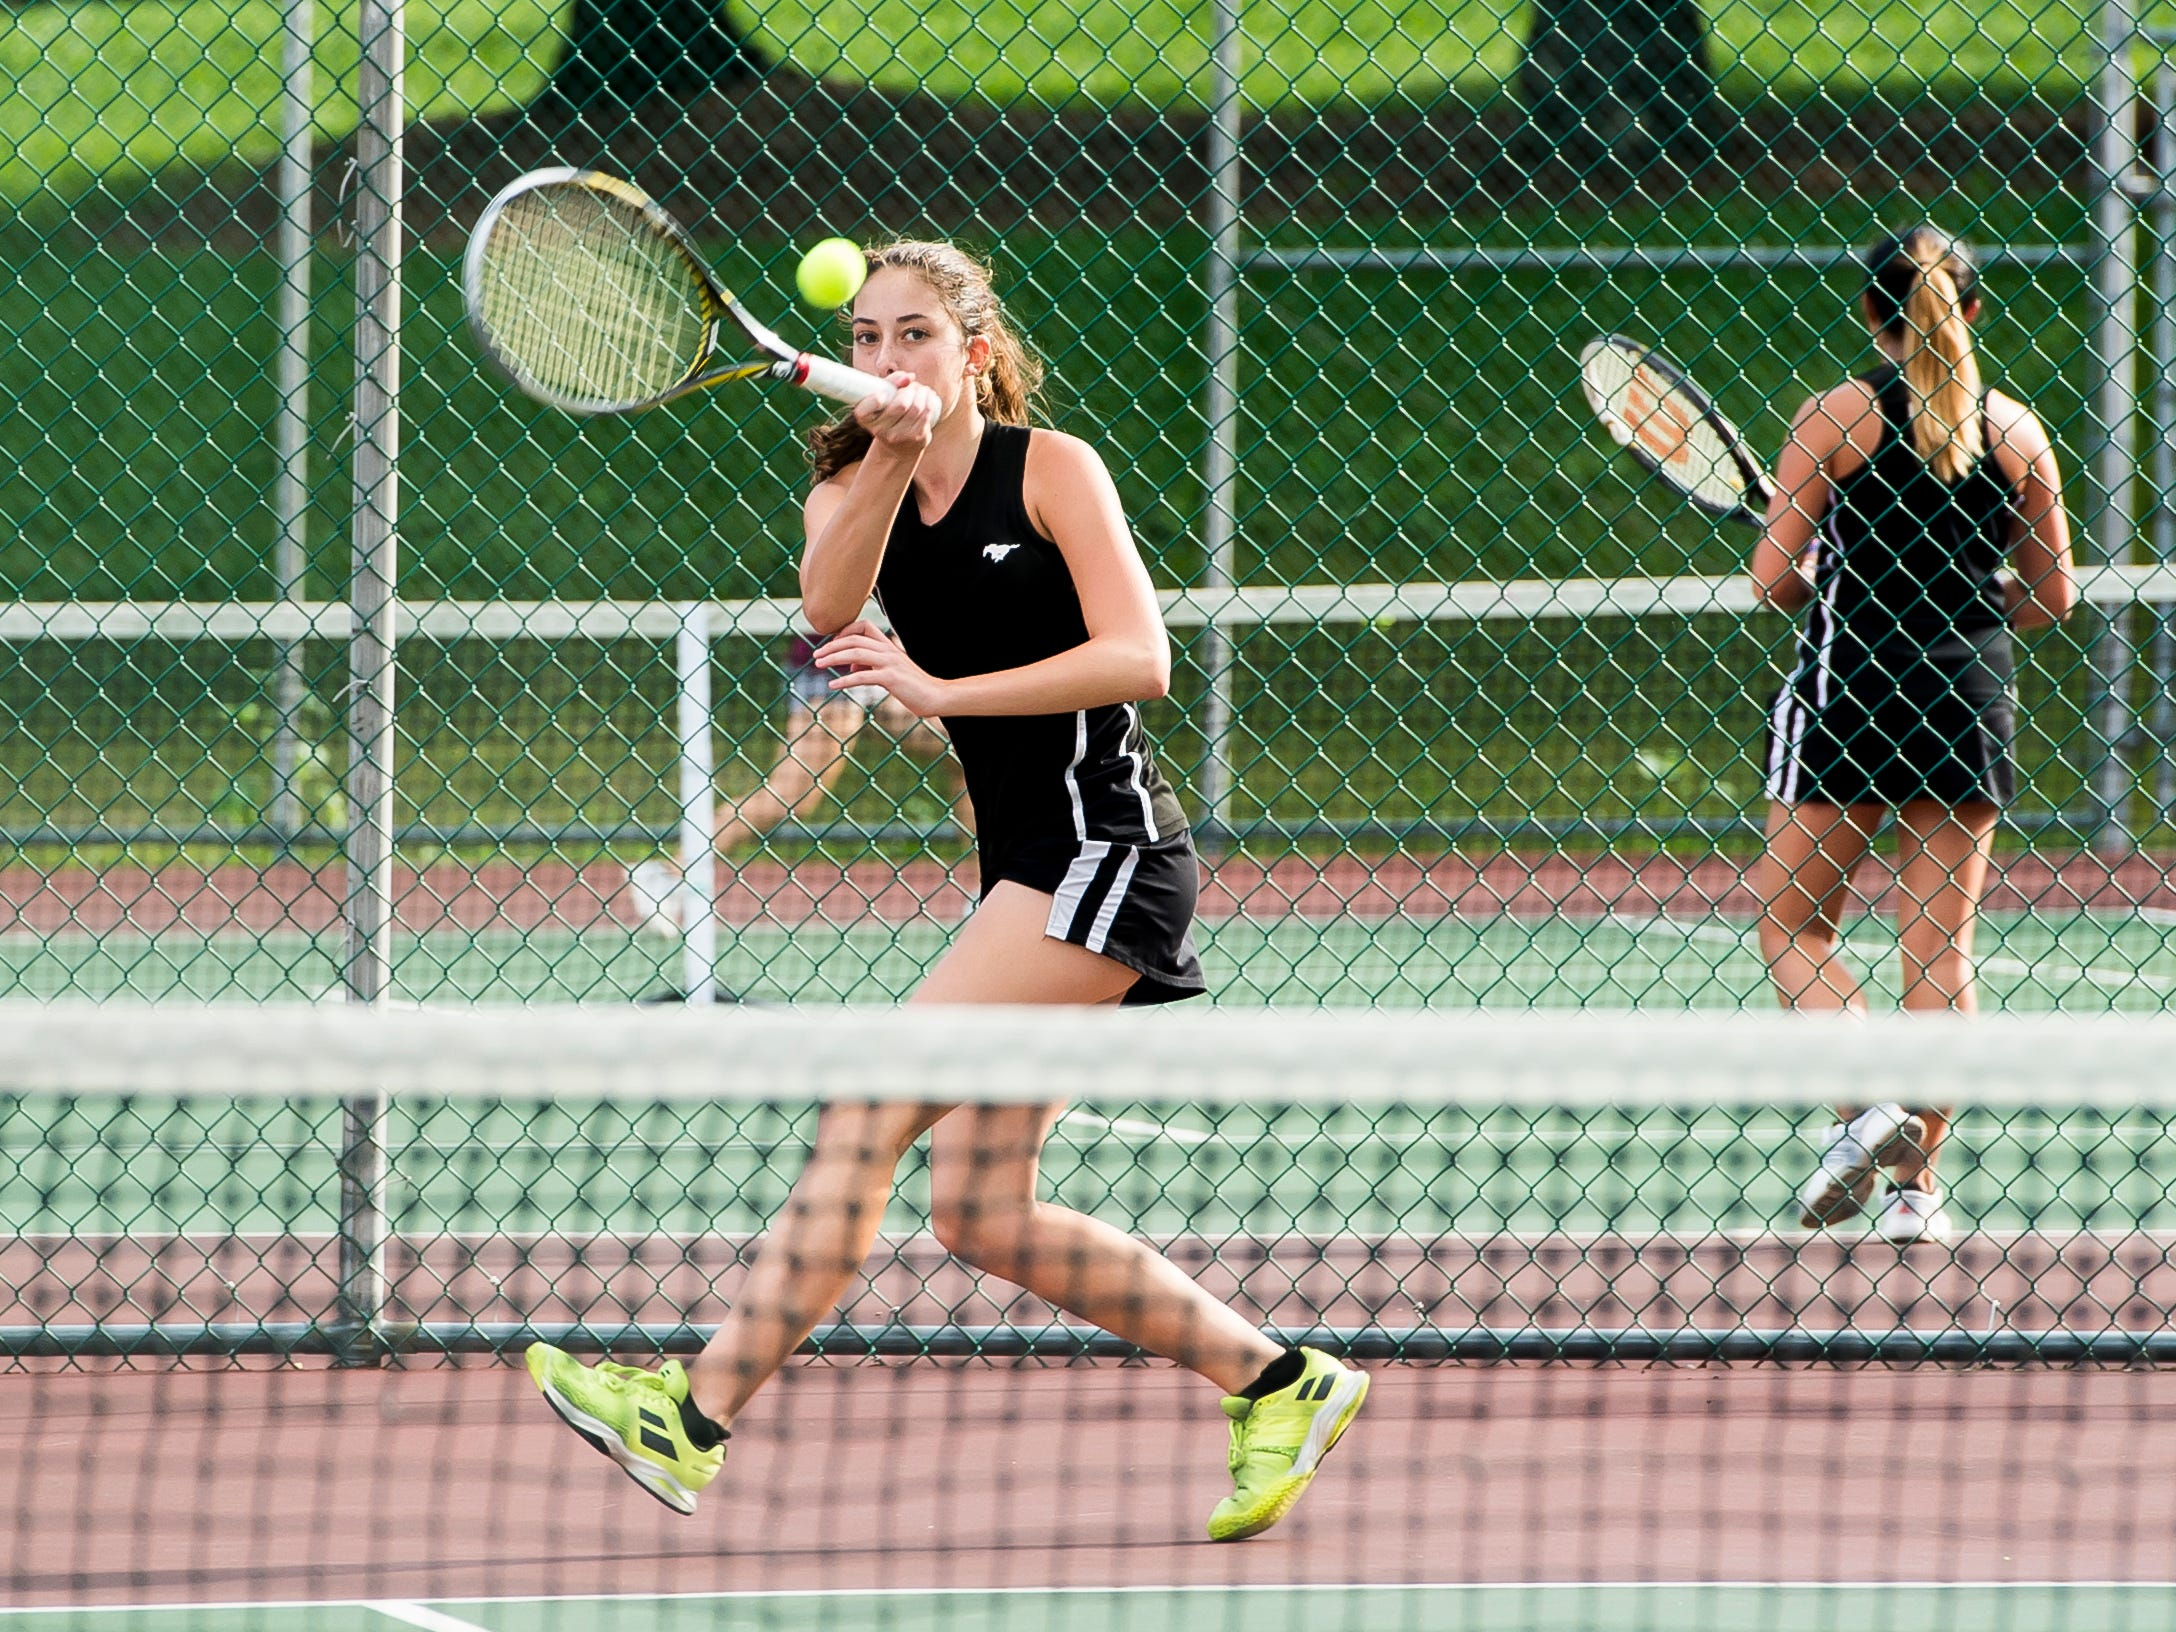 South Western's Michaela Sentz returns the ball to New Oxford's Kamdyn Balko while playing in the No. 1 singles match on Wednesday, September 26, 2018. Sentz won 6-3, 7-6 (2).